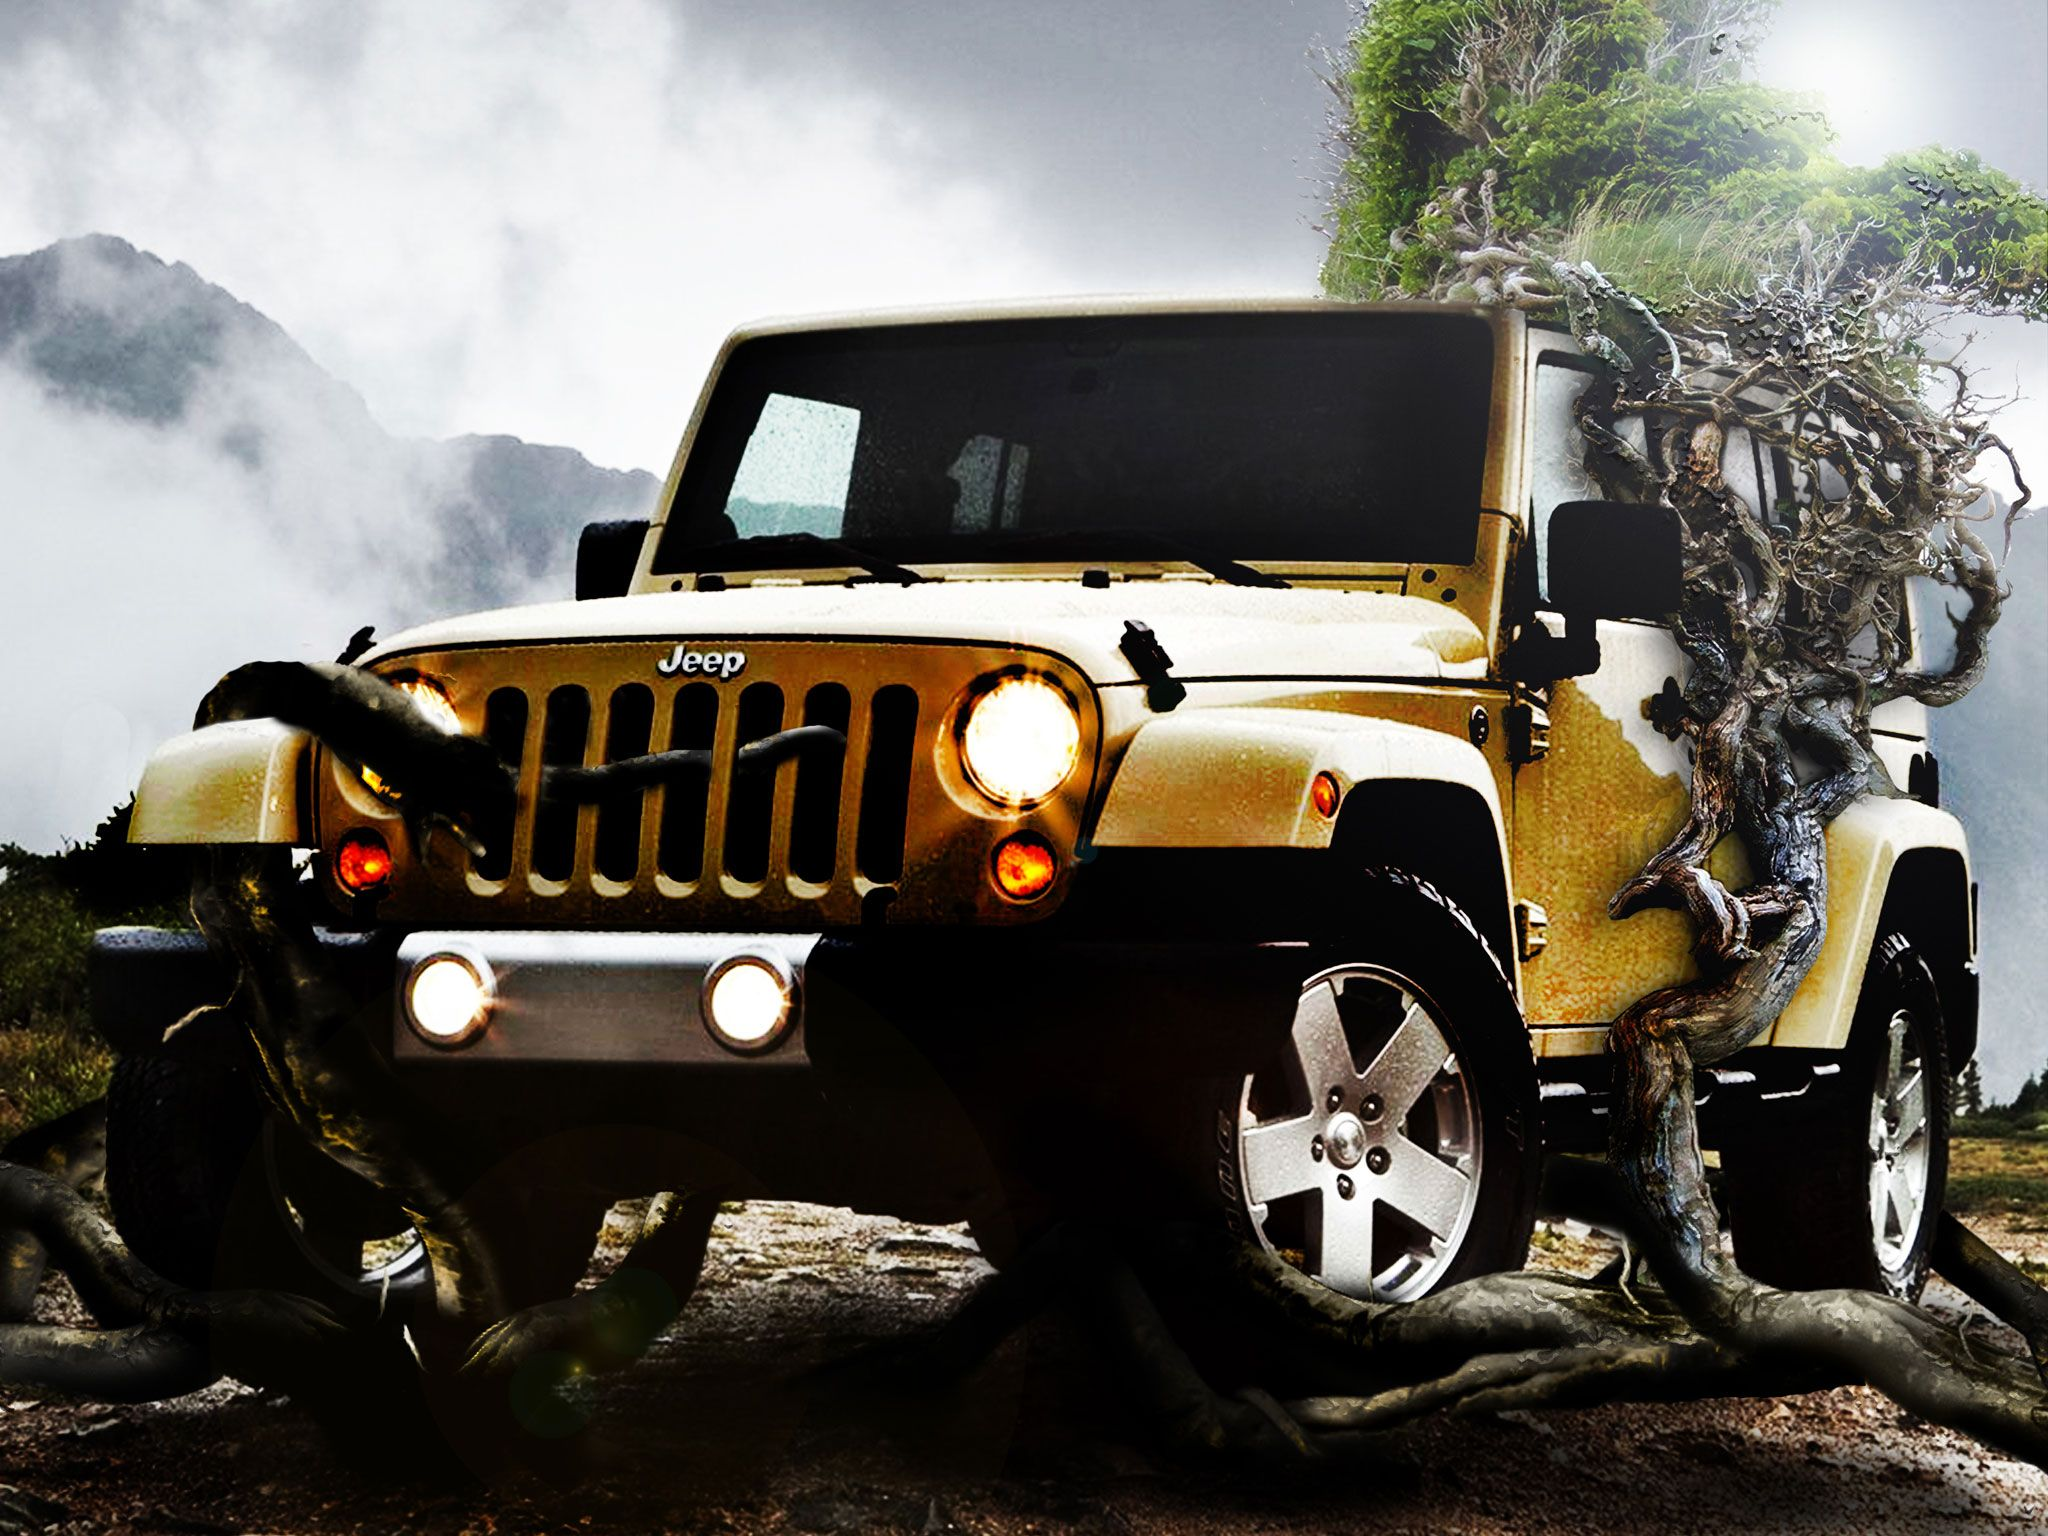 Jeep Wrangler Wallpaper httpwhatstrendingonlinecomjeep